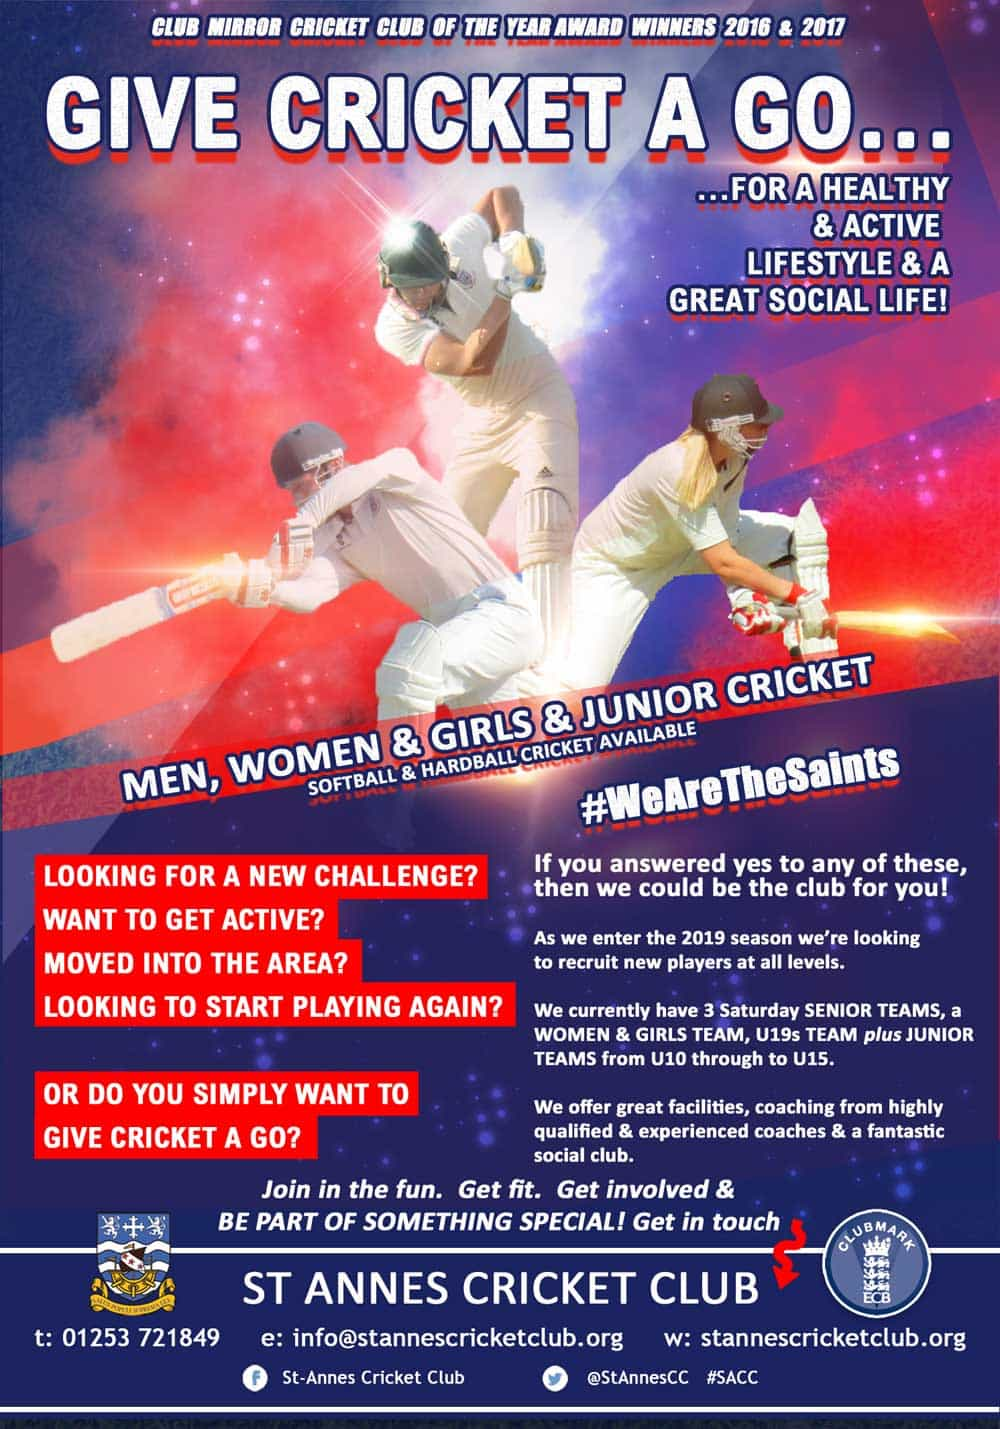 Give cricket a go!  Beginners & experienced players welcome at St Annes CC